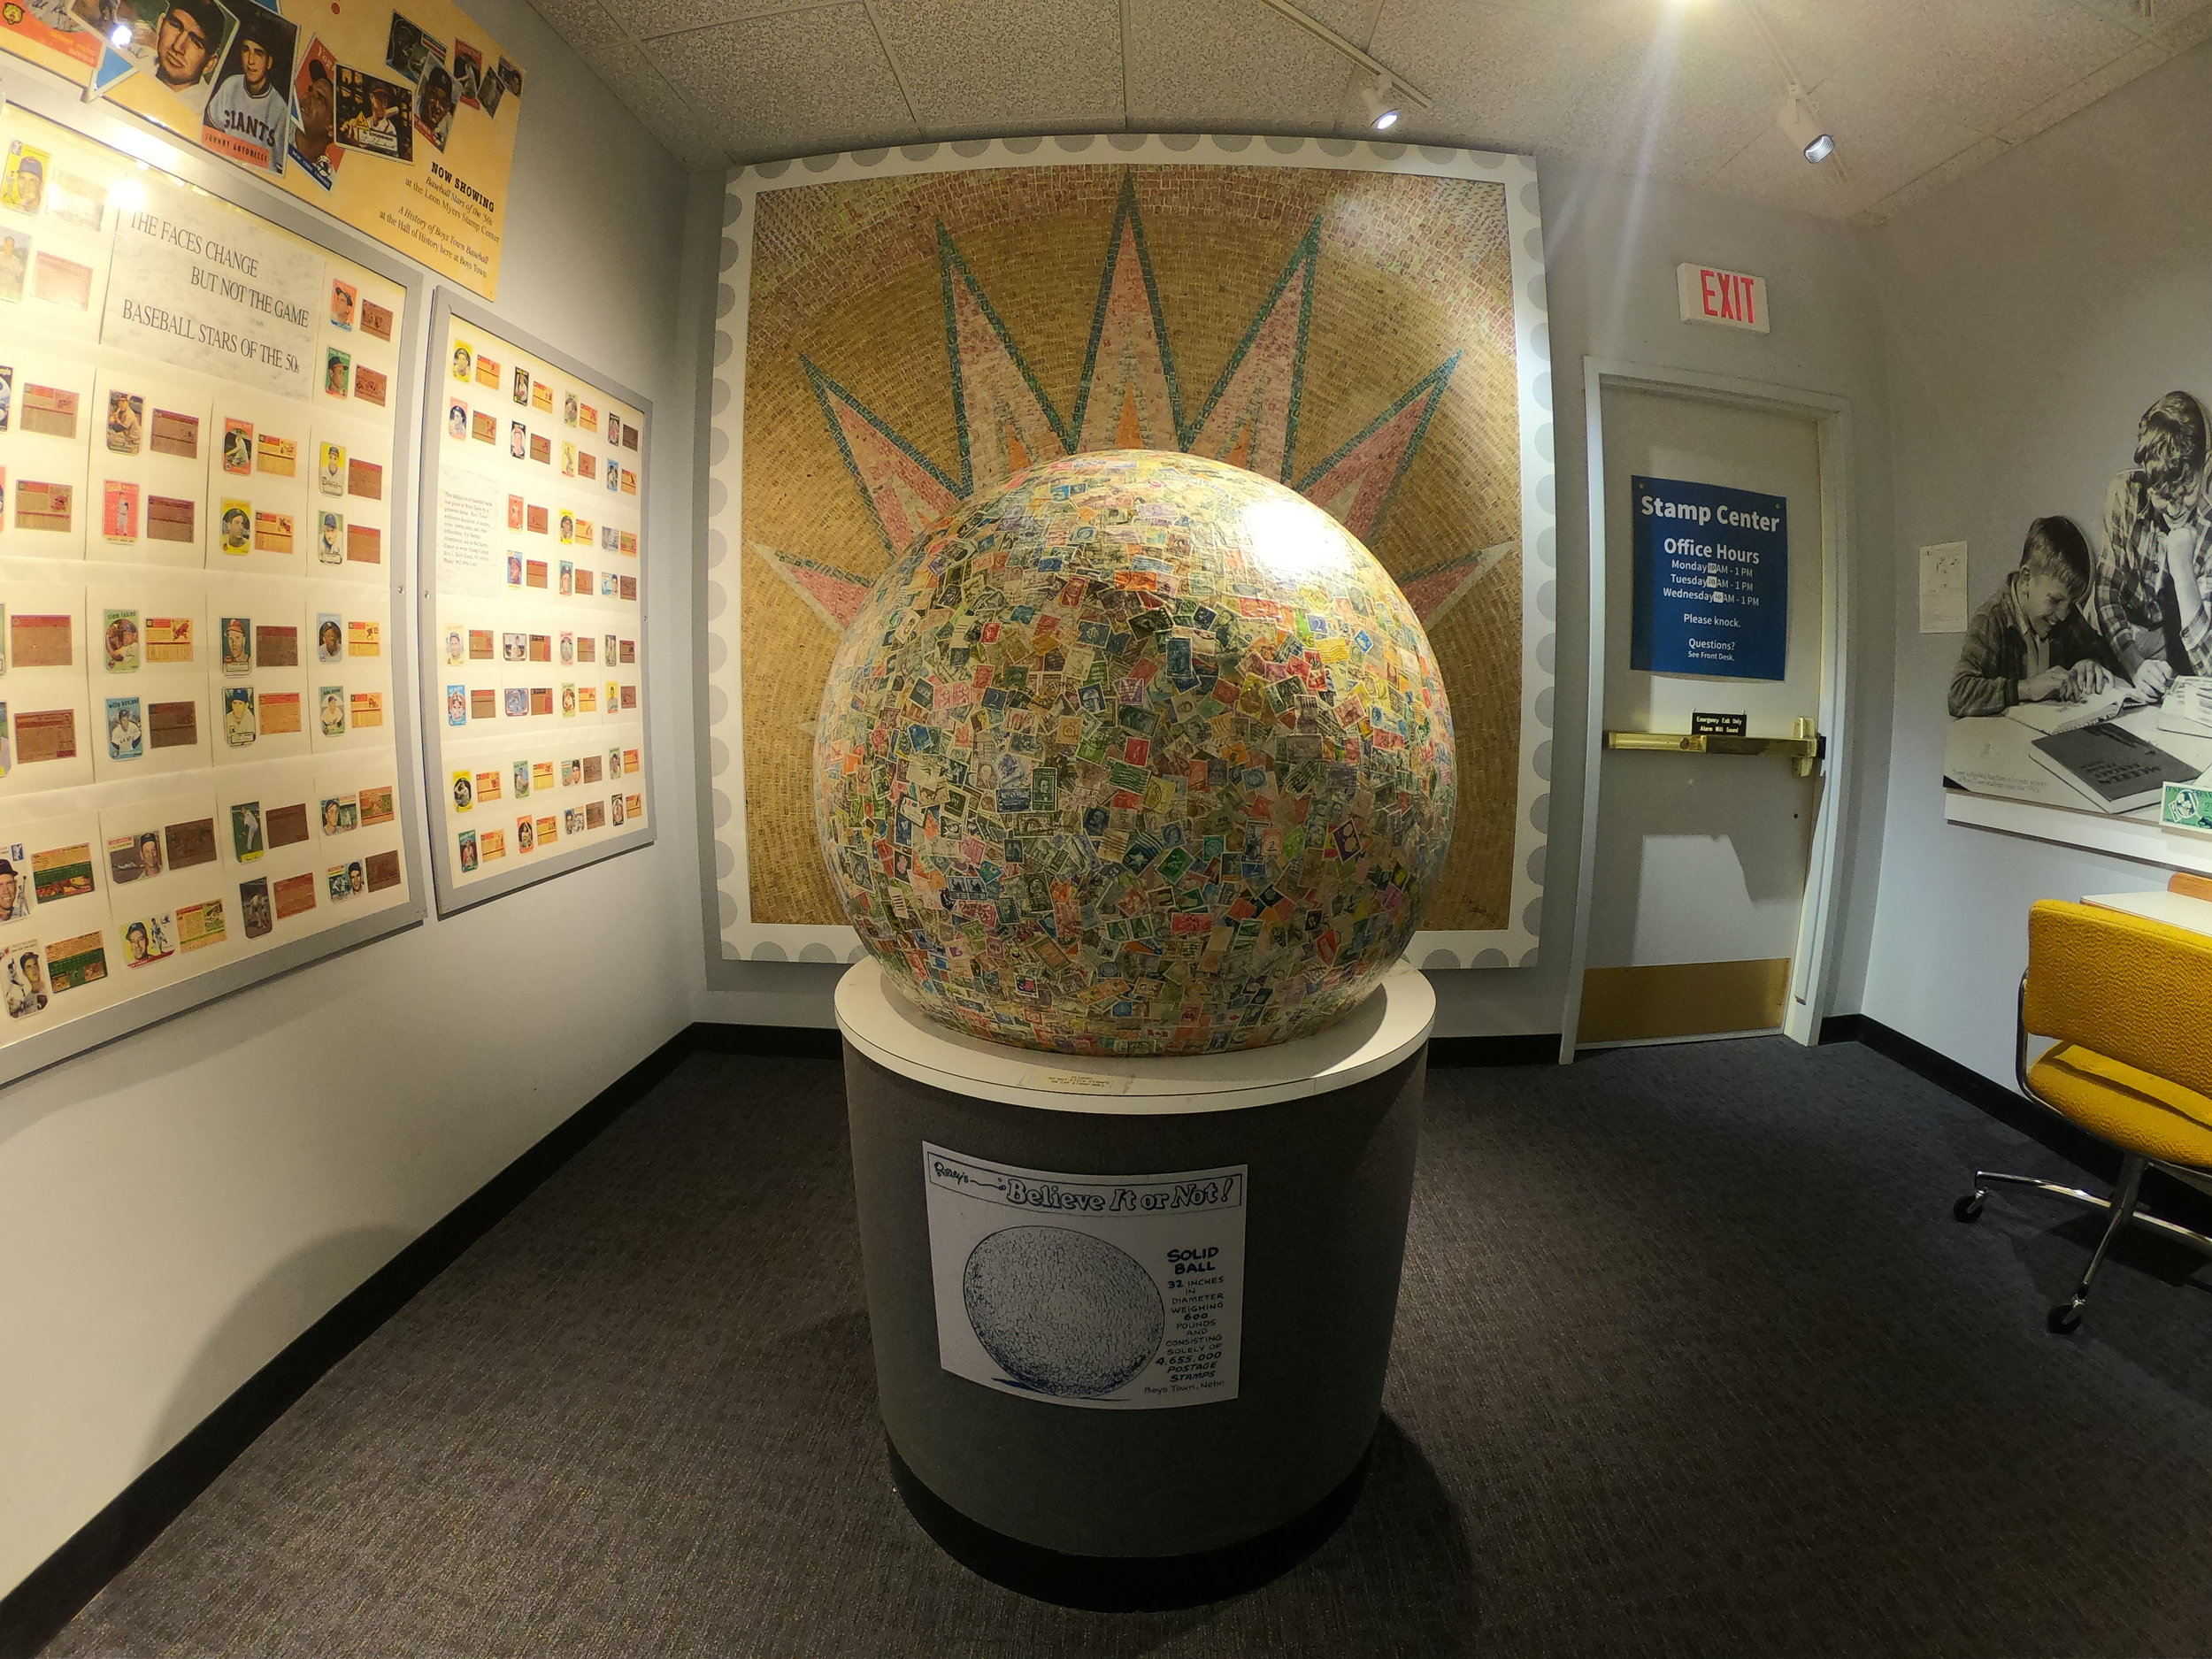 World's Largest Ball of Stamps in Boys Town, Nebraska